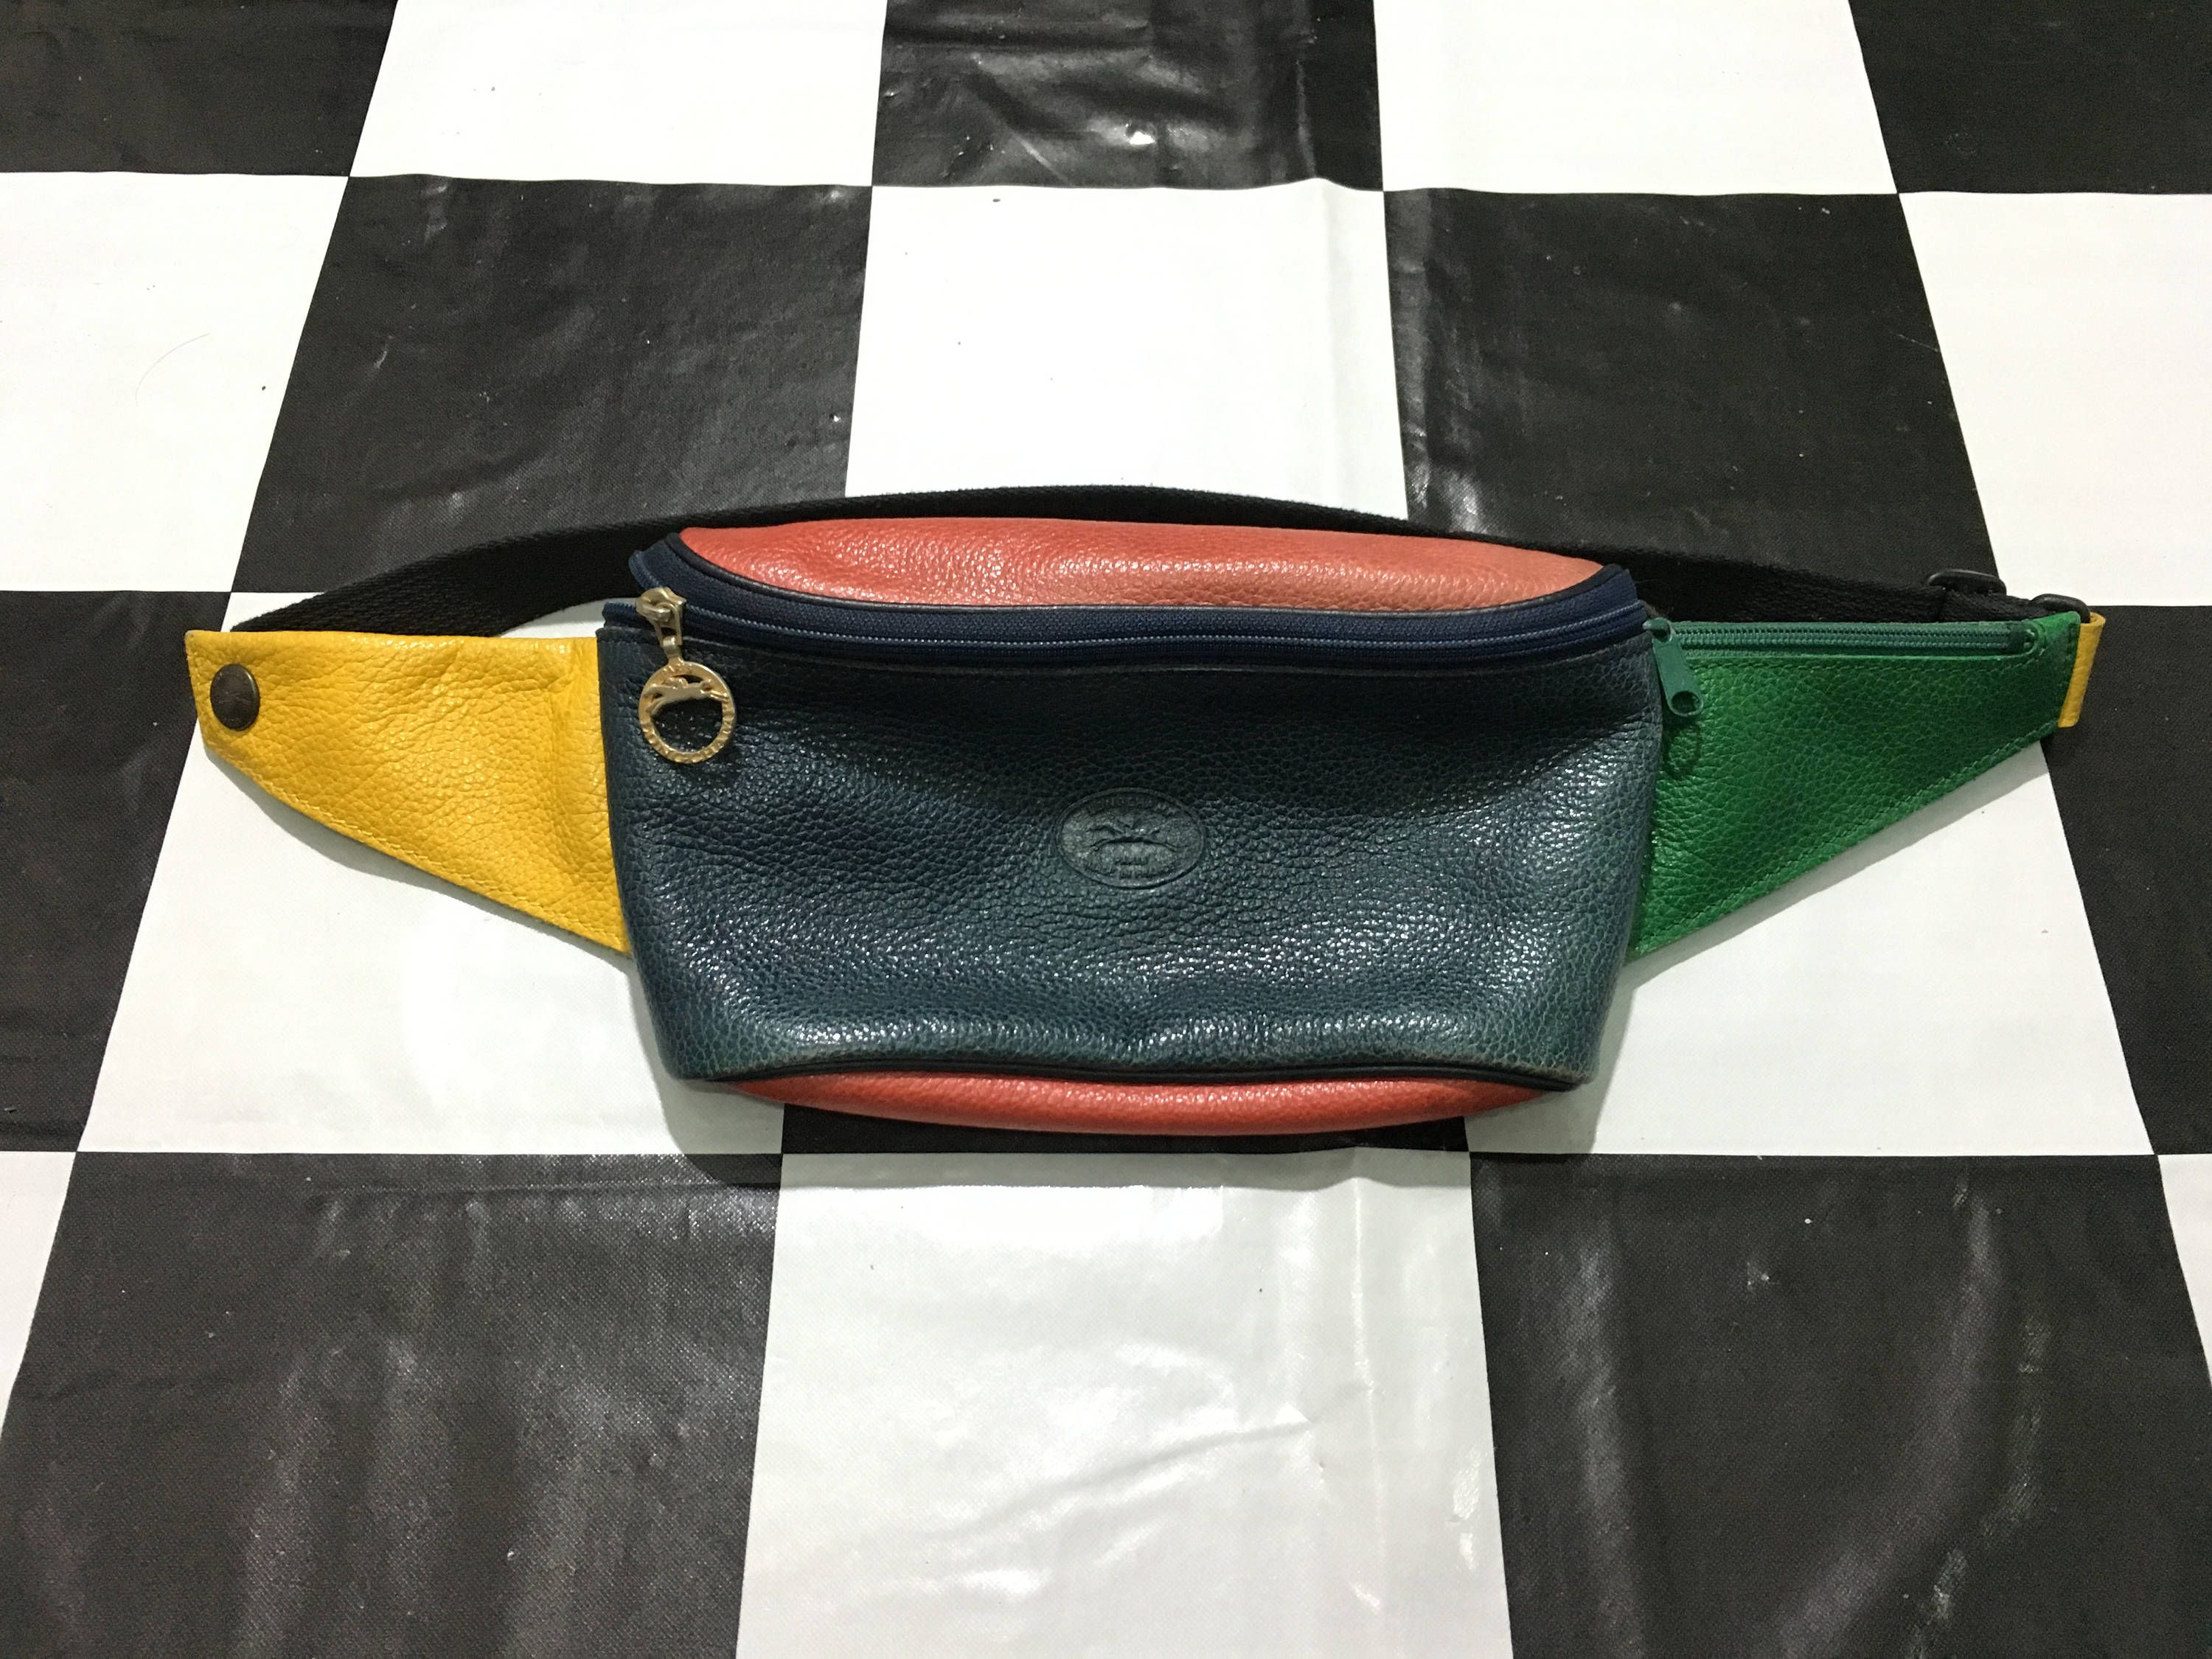 fbe56774e079 Vintage Longchamp waist bag multi-color leather fanny pack Made in France  Longchamp Paris Excellent condition by AlivevintageShop on Etsy